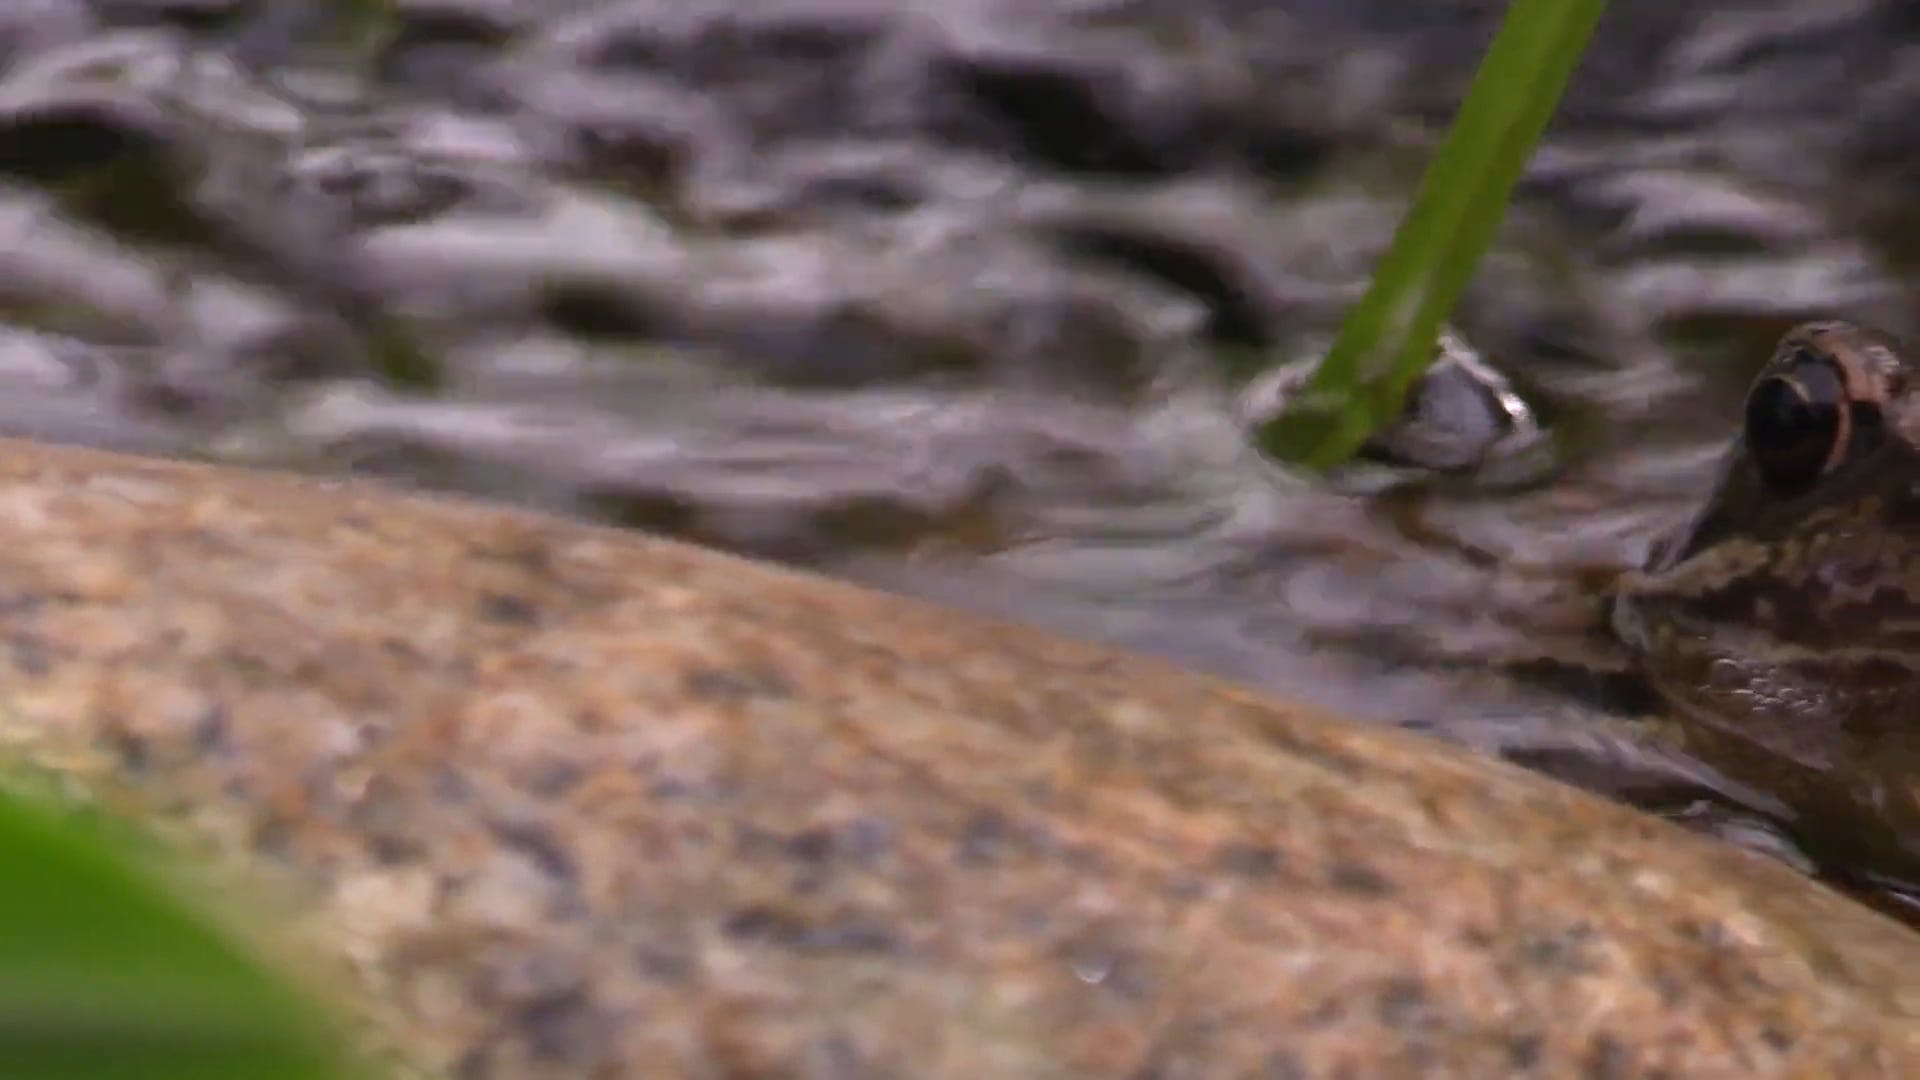 Close-Up Video Of Frog